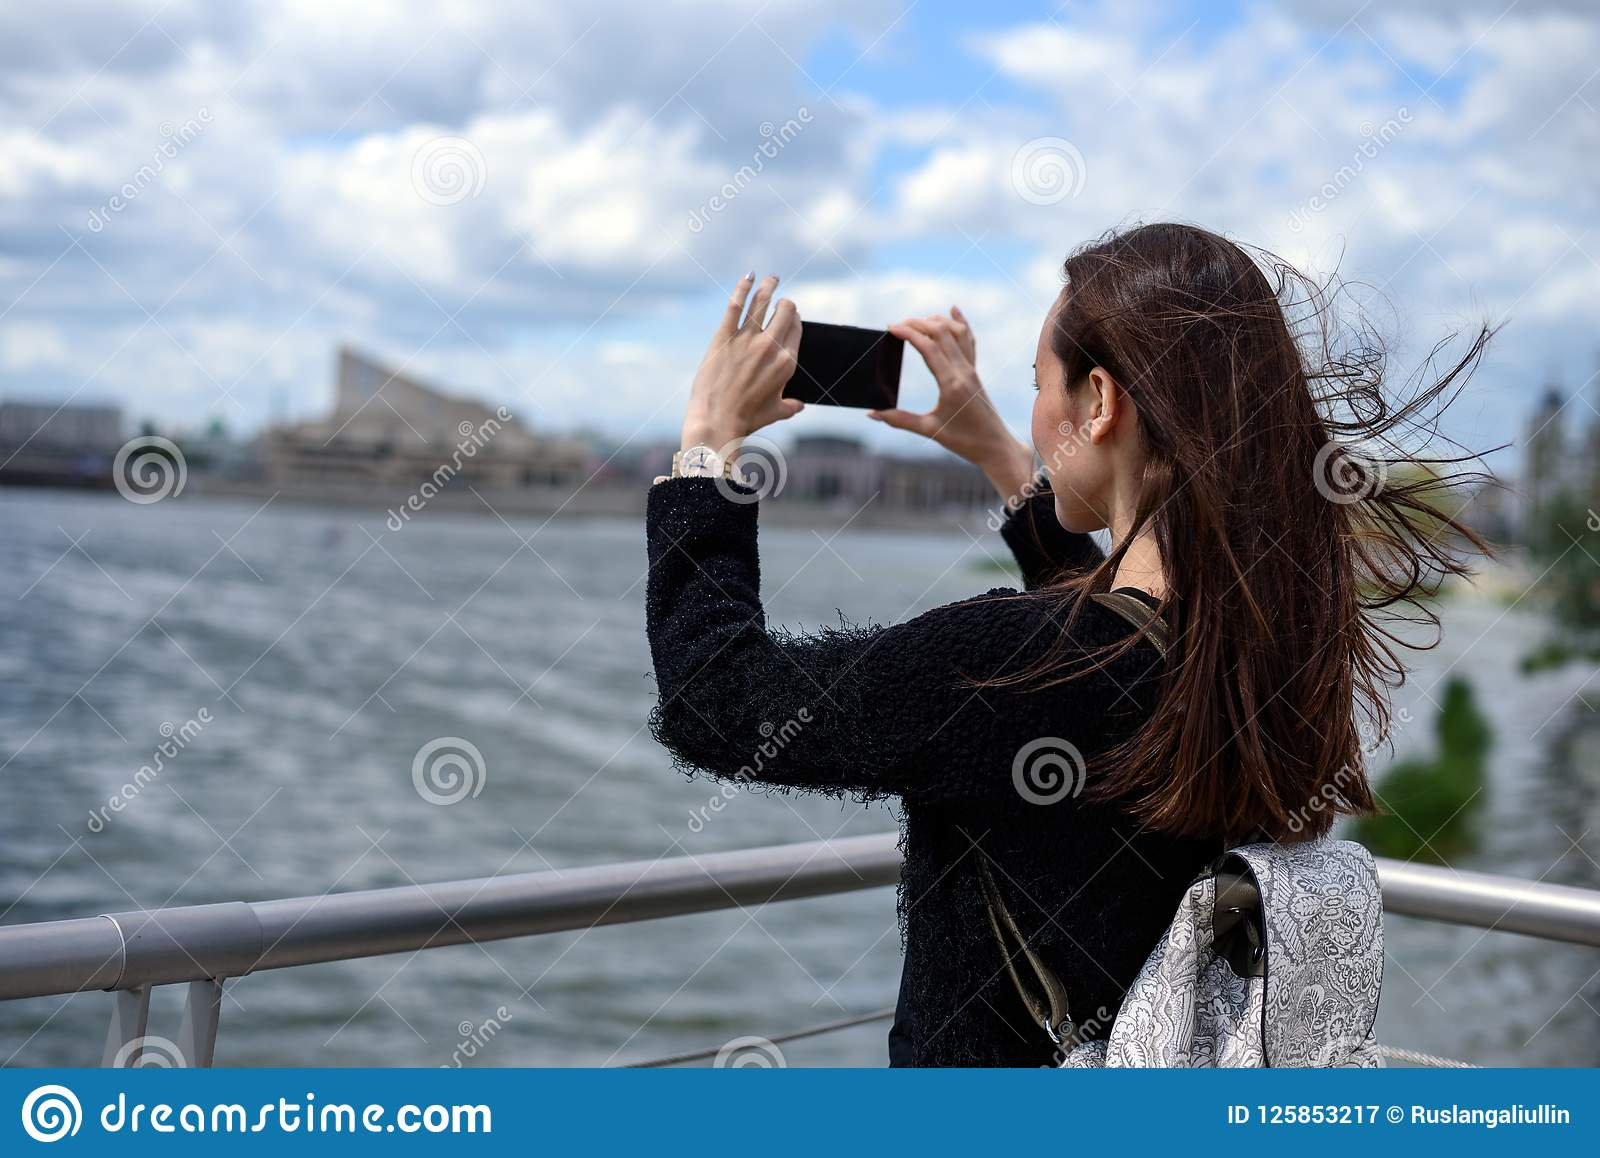 Young woman on the waterfront taking pictures of the city landscape